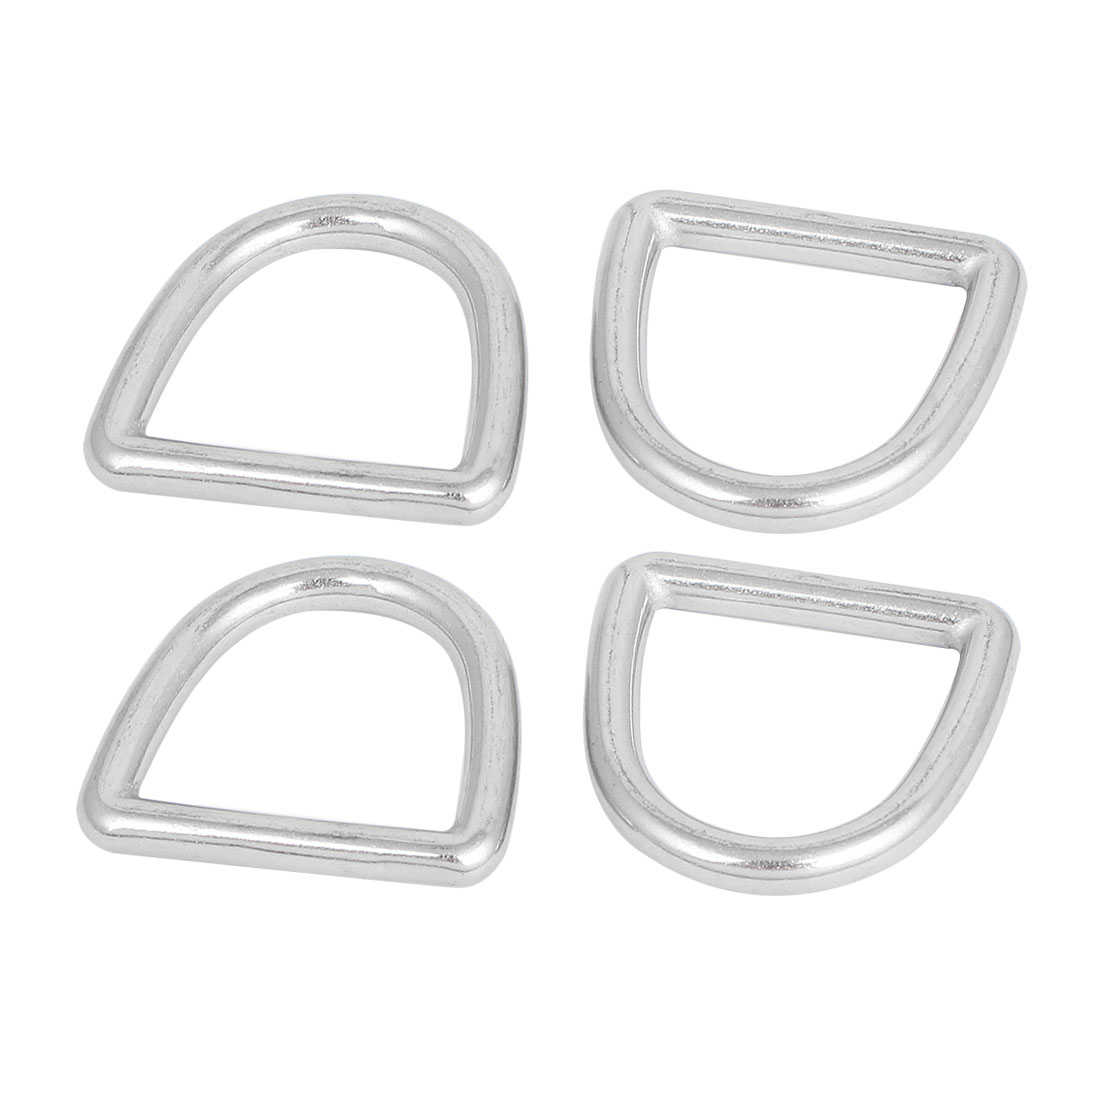 Stainless Steel D Ring Hooks D-Shaped Belt Buckles 4 Pcs for Handbag